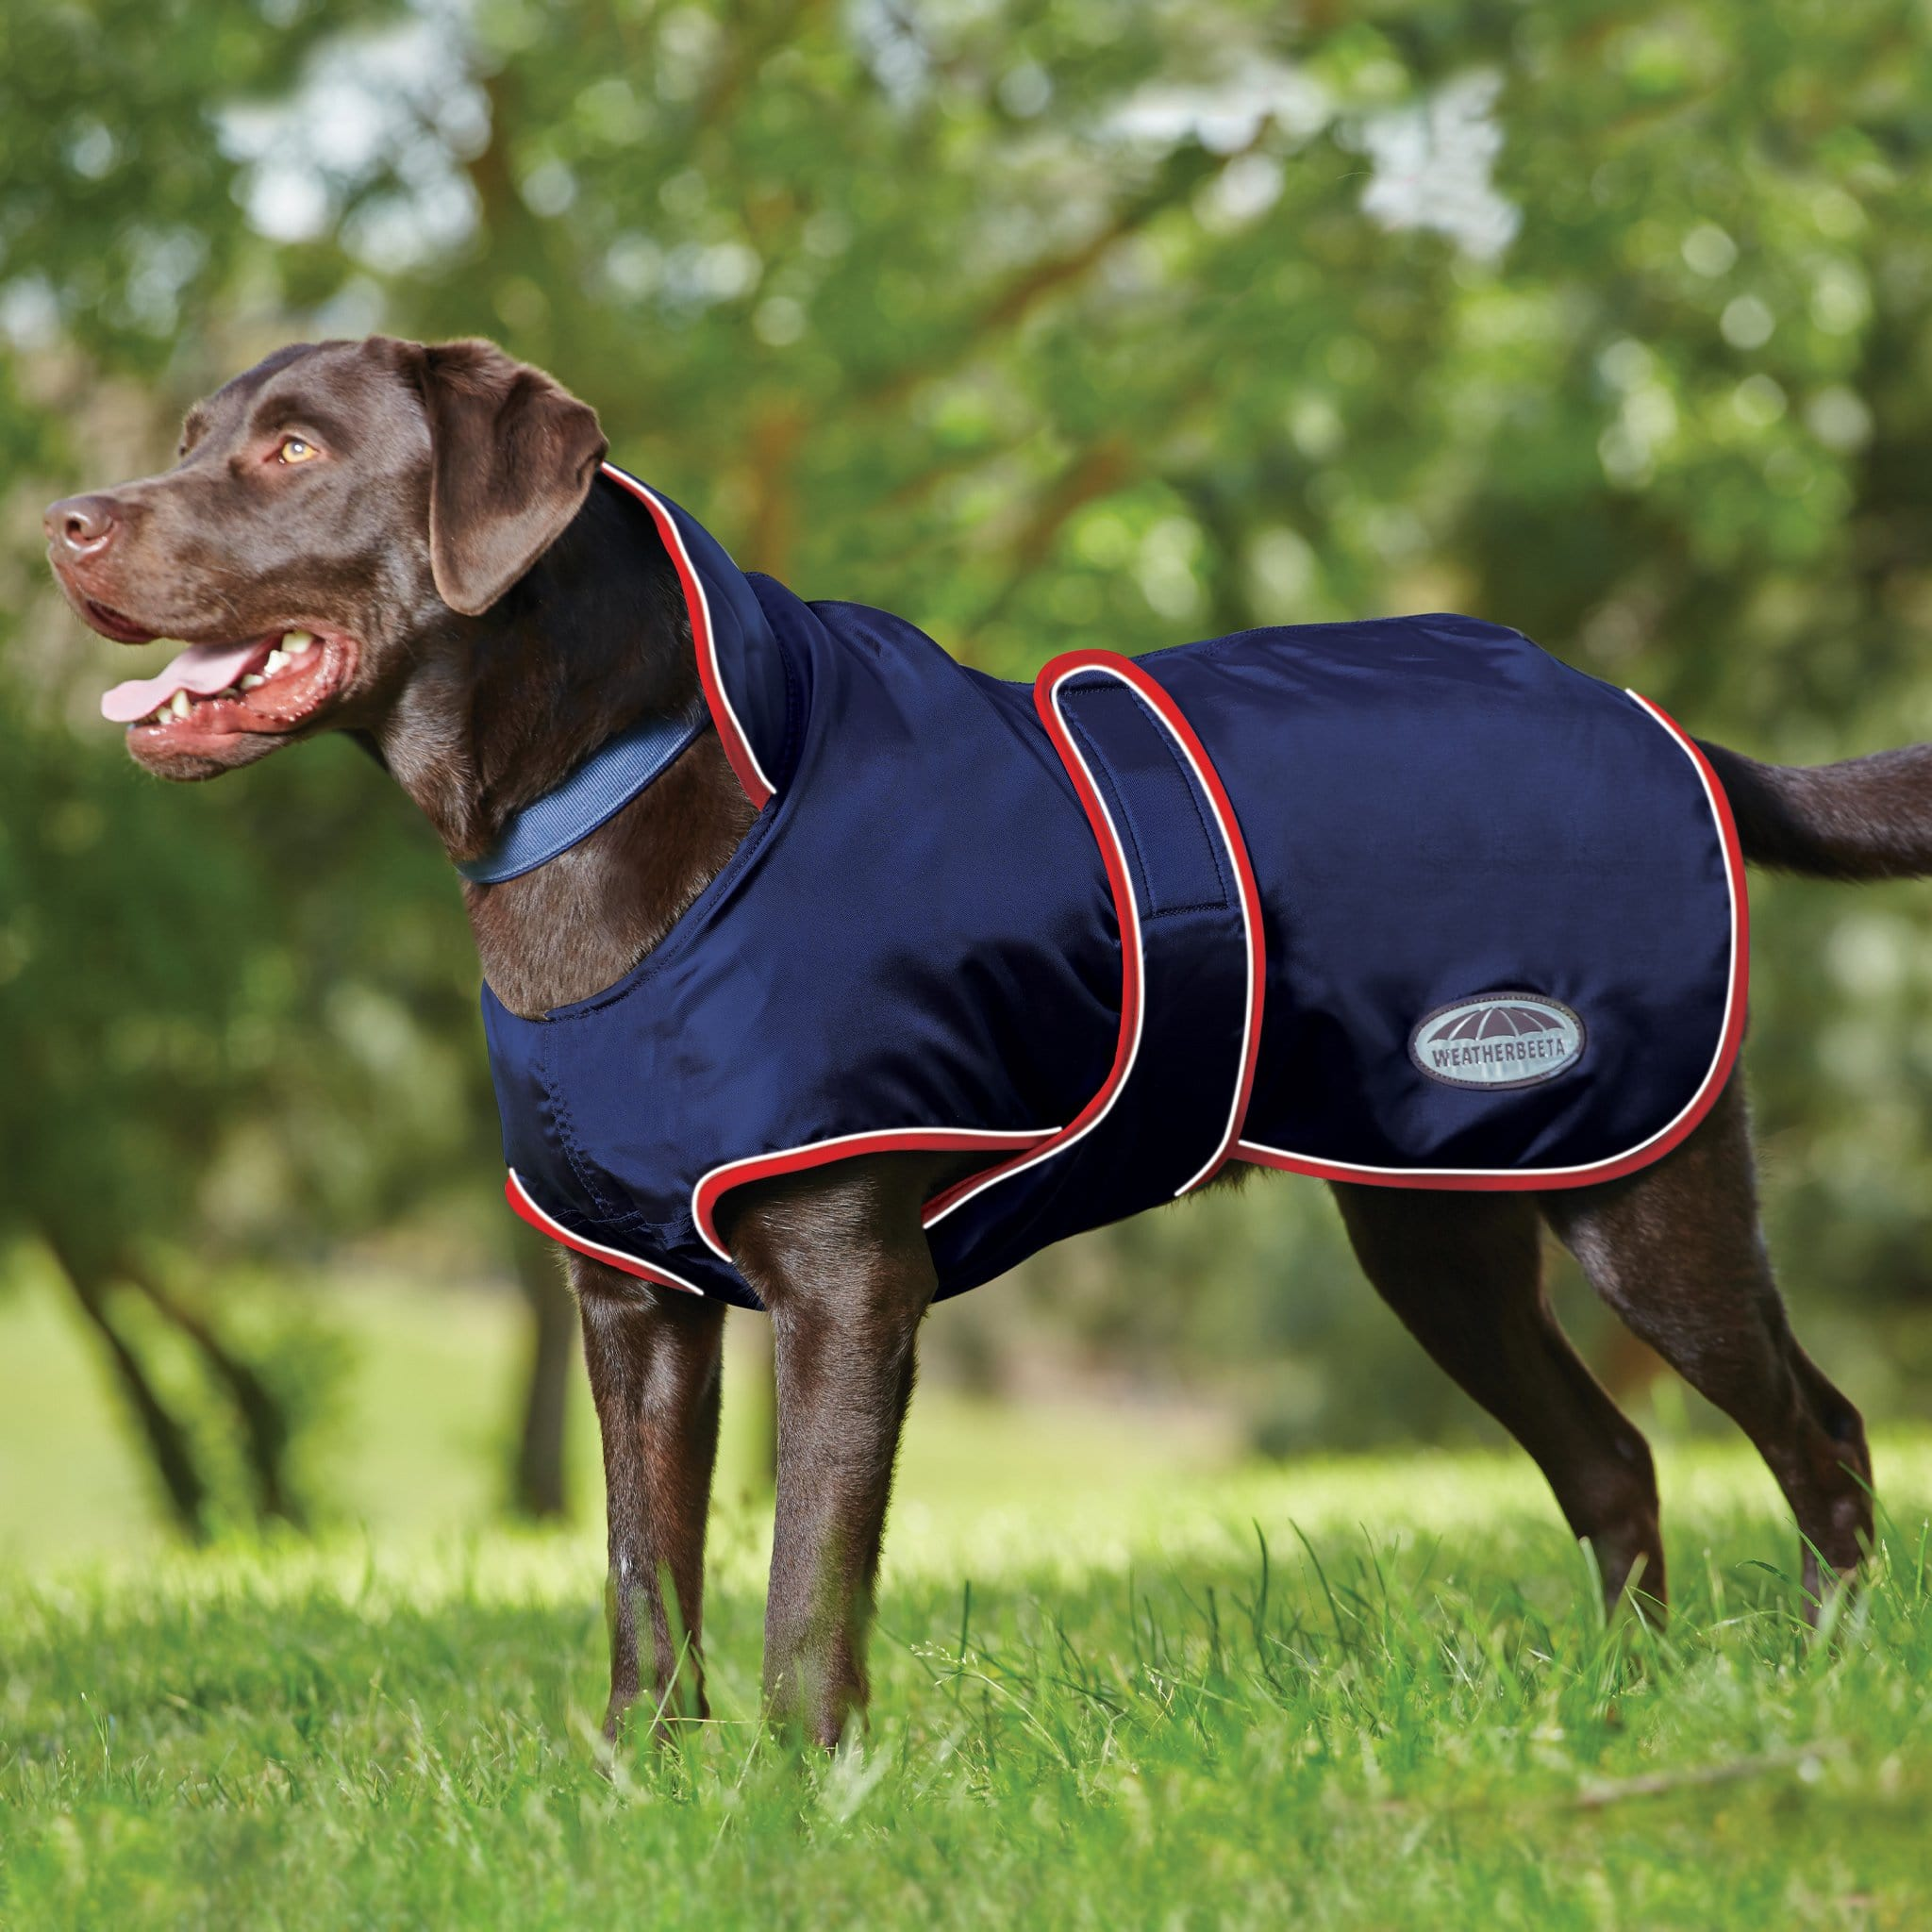 Weatherbeeta ComFiTec Windbreaker 420D Deluxe Dog Coat On Dog Navy/Red/White 646817.